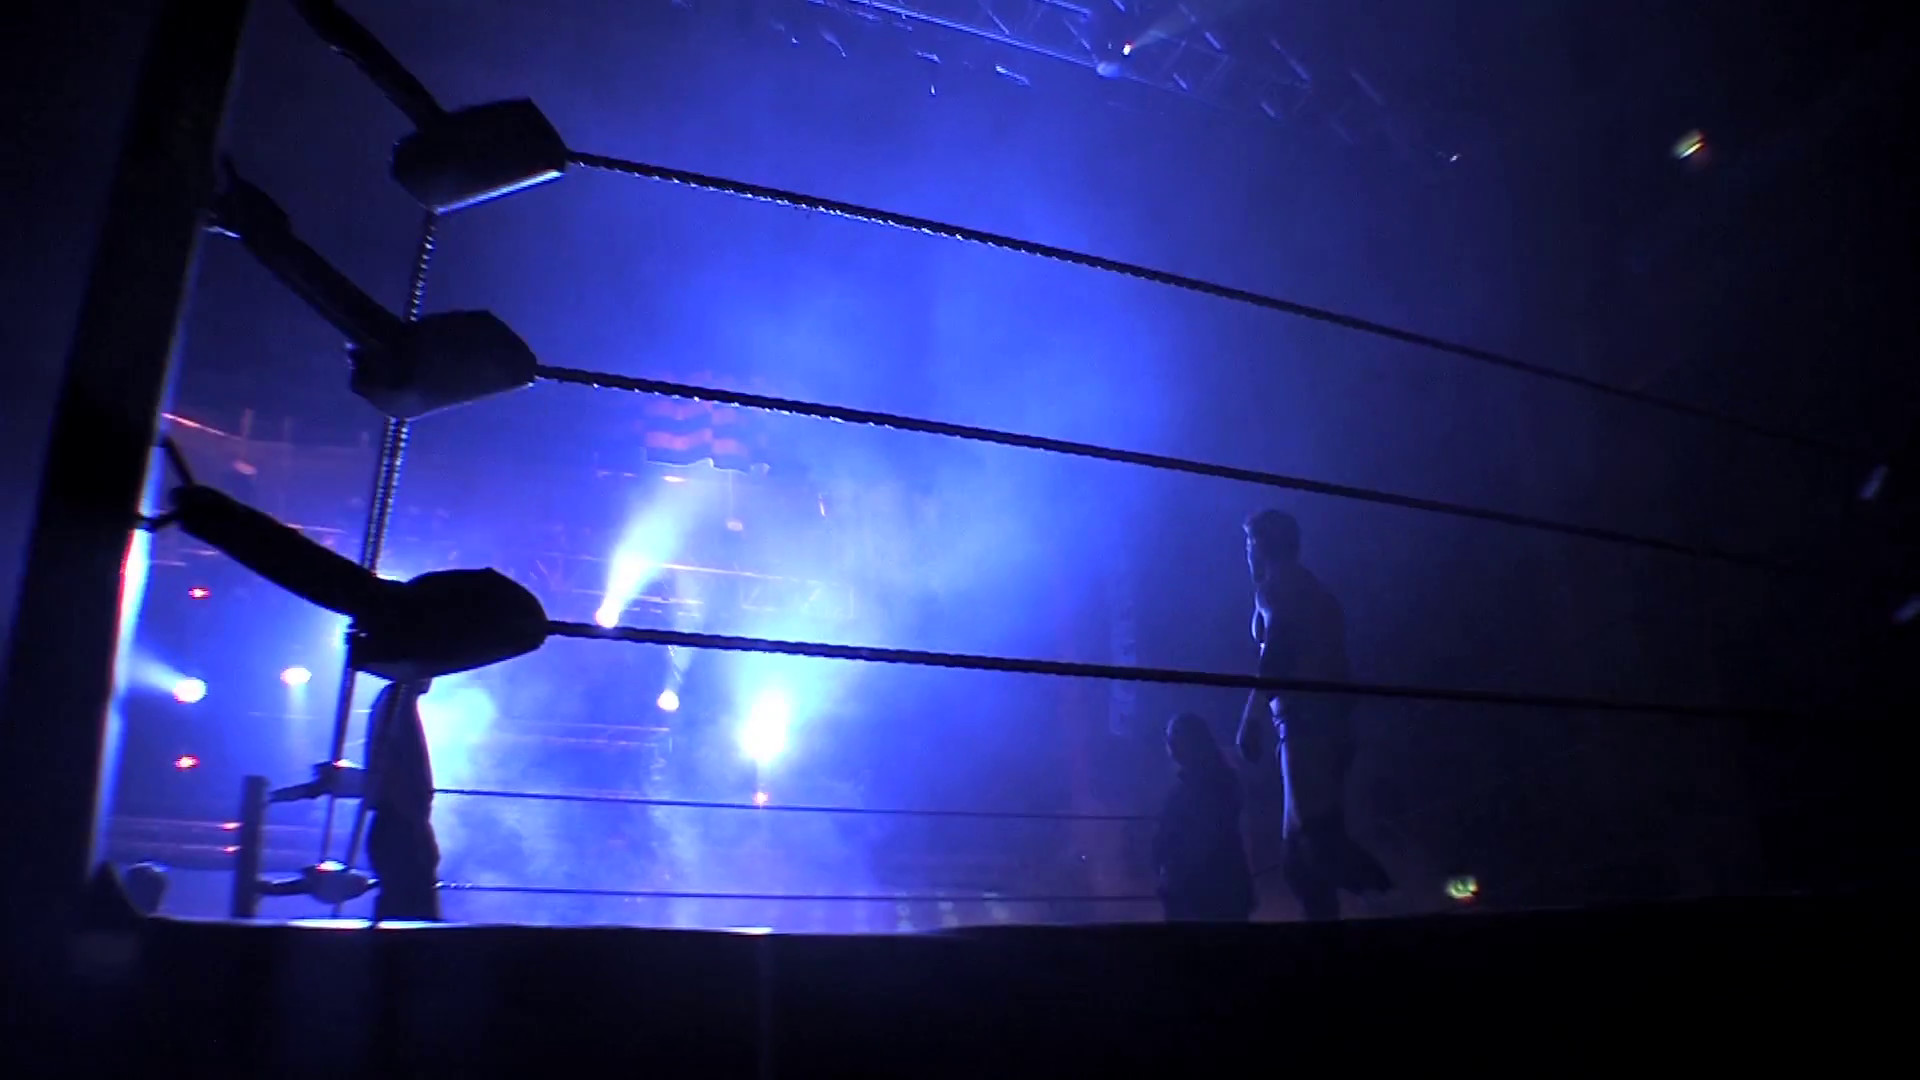 Res: 1920x1080, Silhouette of Wrestling / Boxing Ring Ropes & Silhouetted Wrestler in Ring  with Cool Lighting Stock Video Footage - Videoblocks